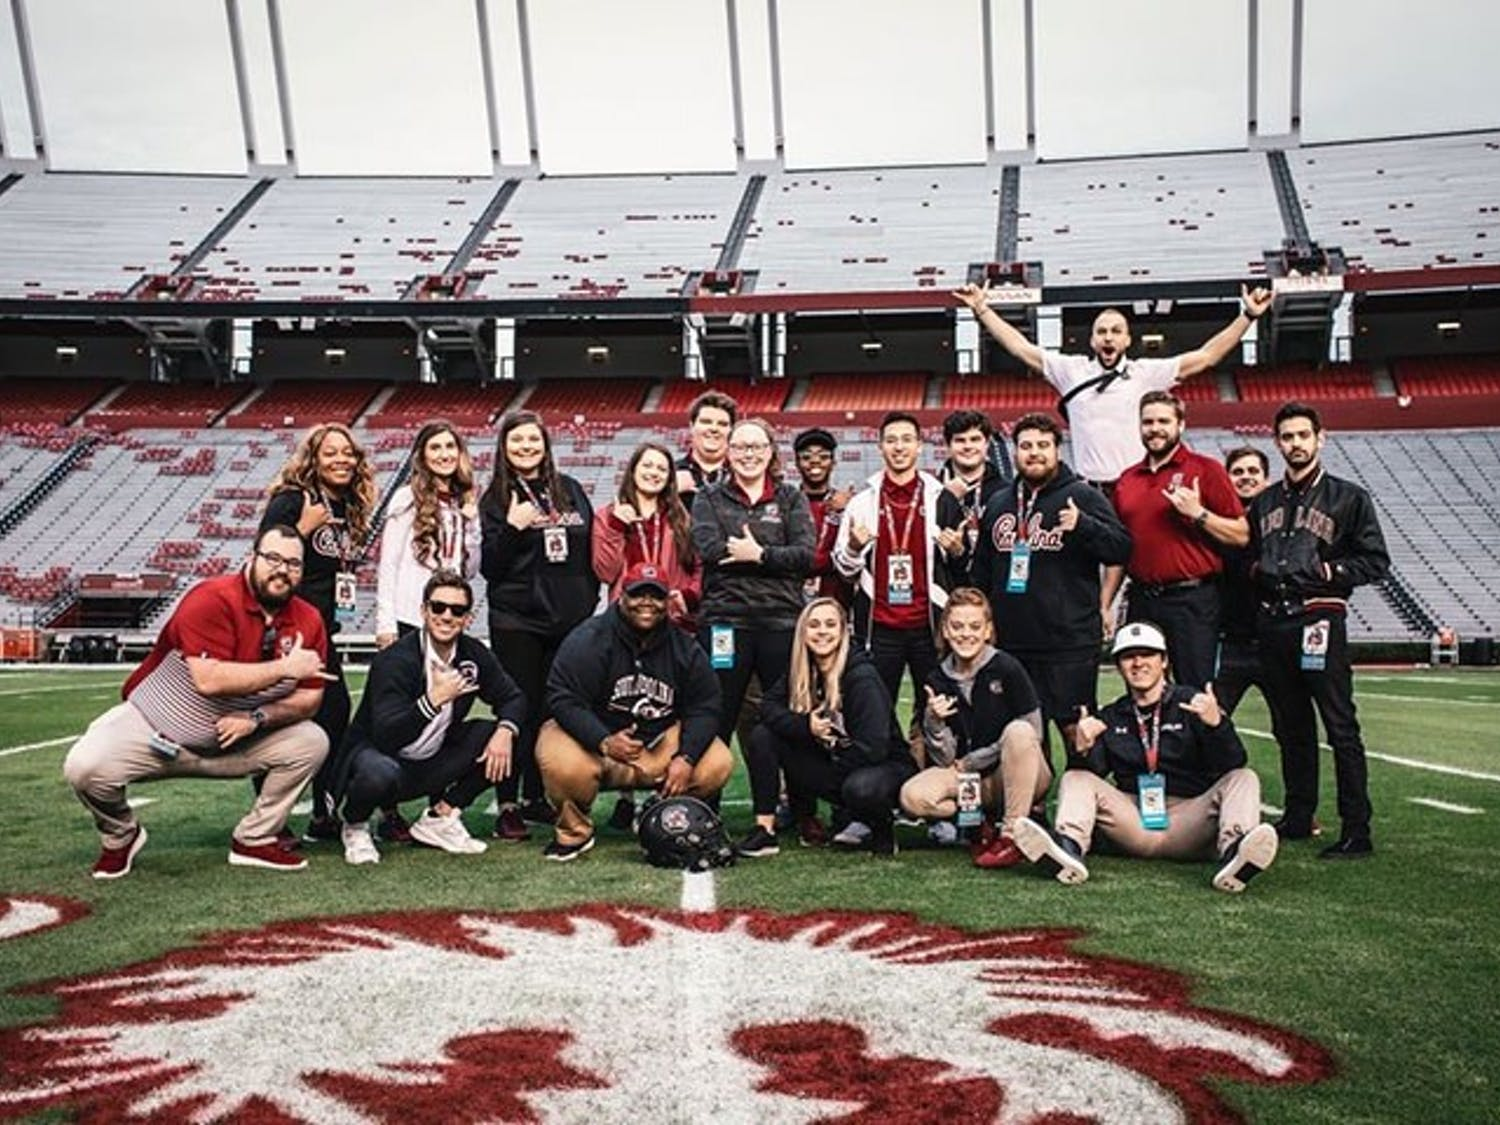 The media team gathered for a team photo at Williams-Brice Stadium before a home game during the 2019 season.